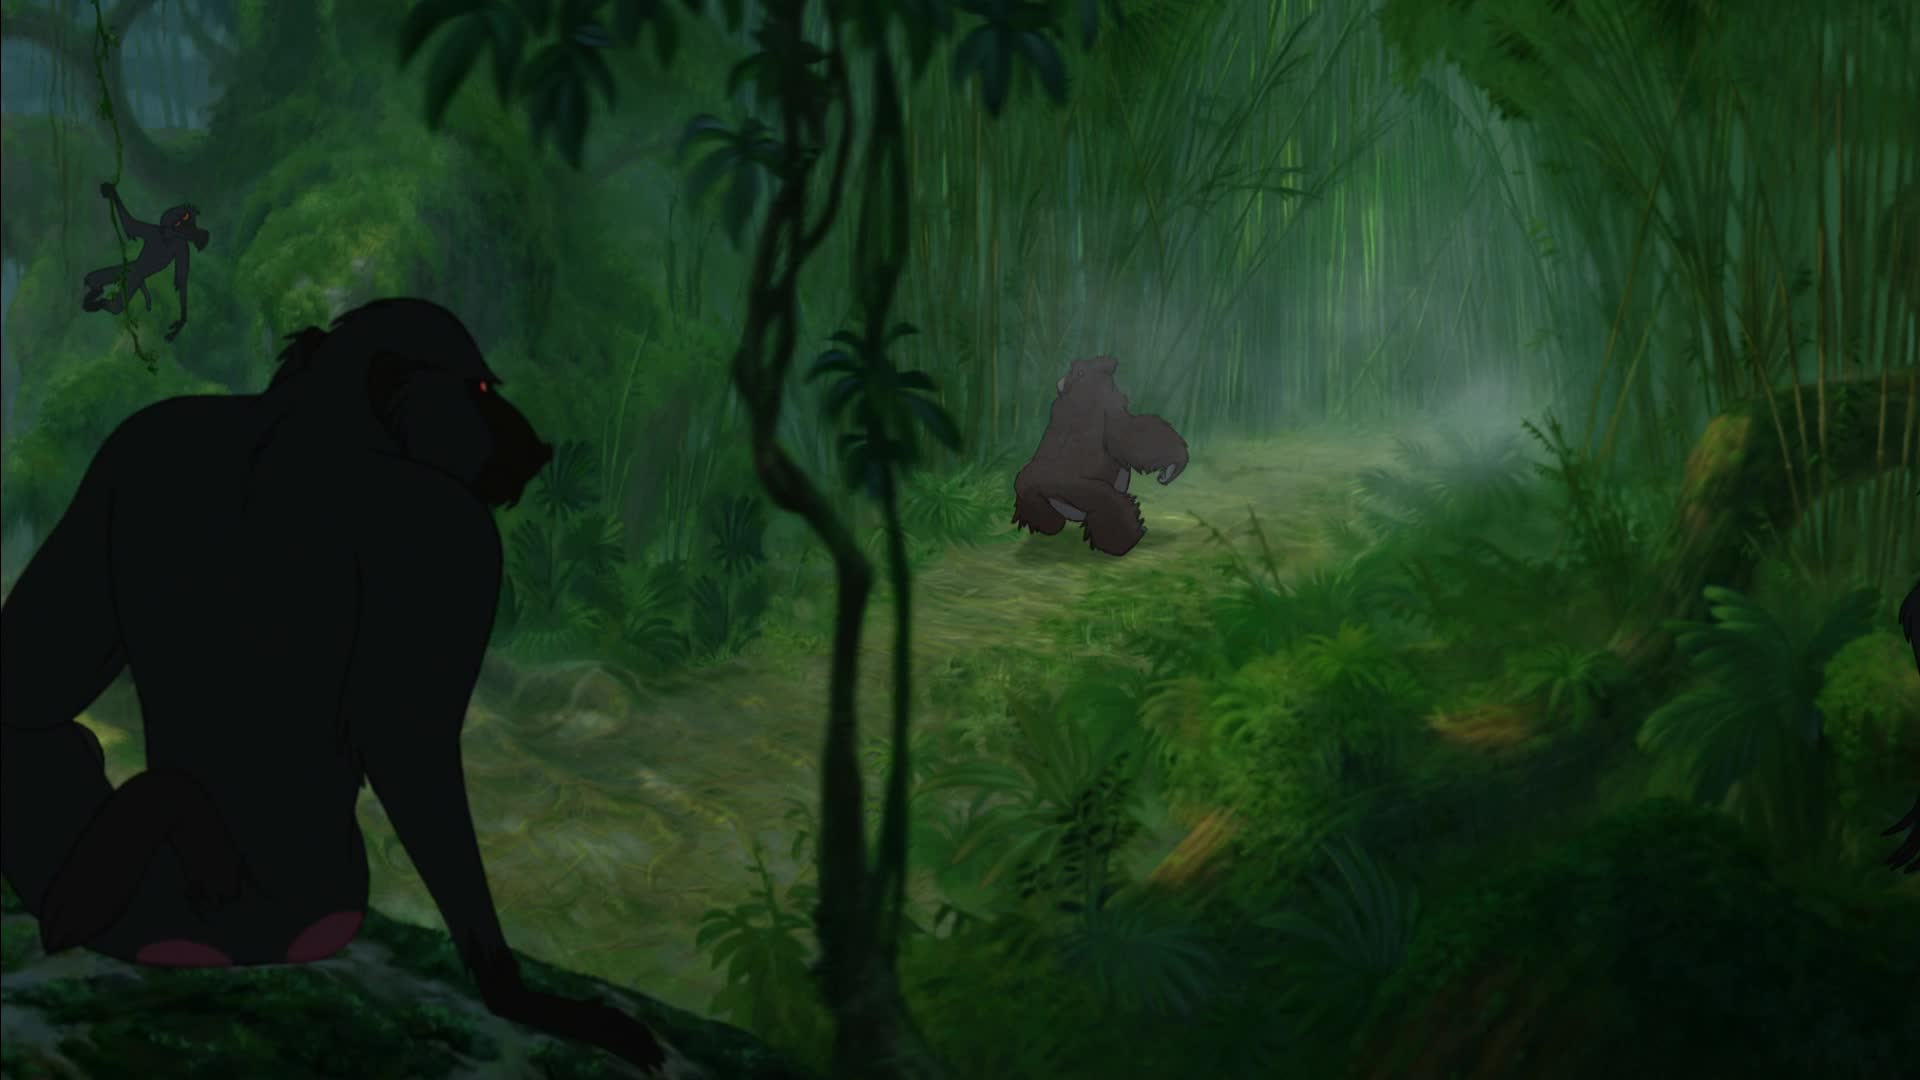 tarzan chat sites Gorean html whochat listing  please note: this page is only for html chat sites with gorean themed rooms on them other types of chat will not be added please do .